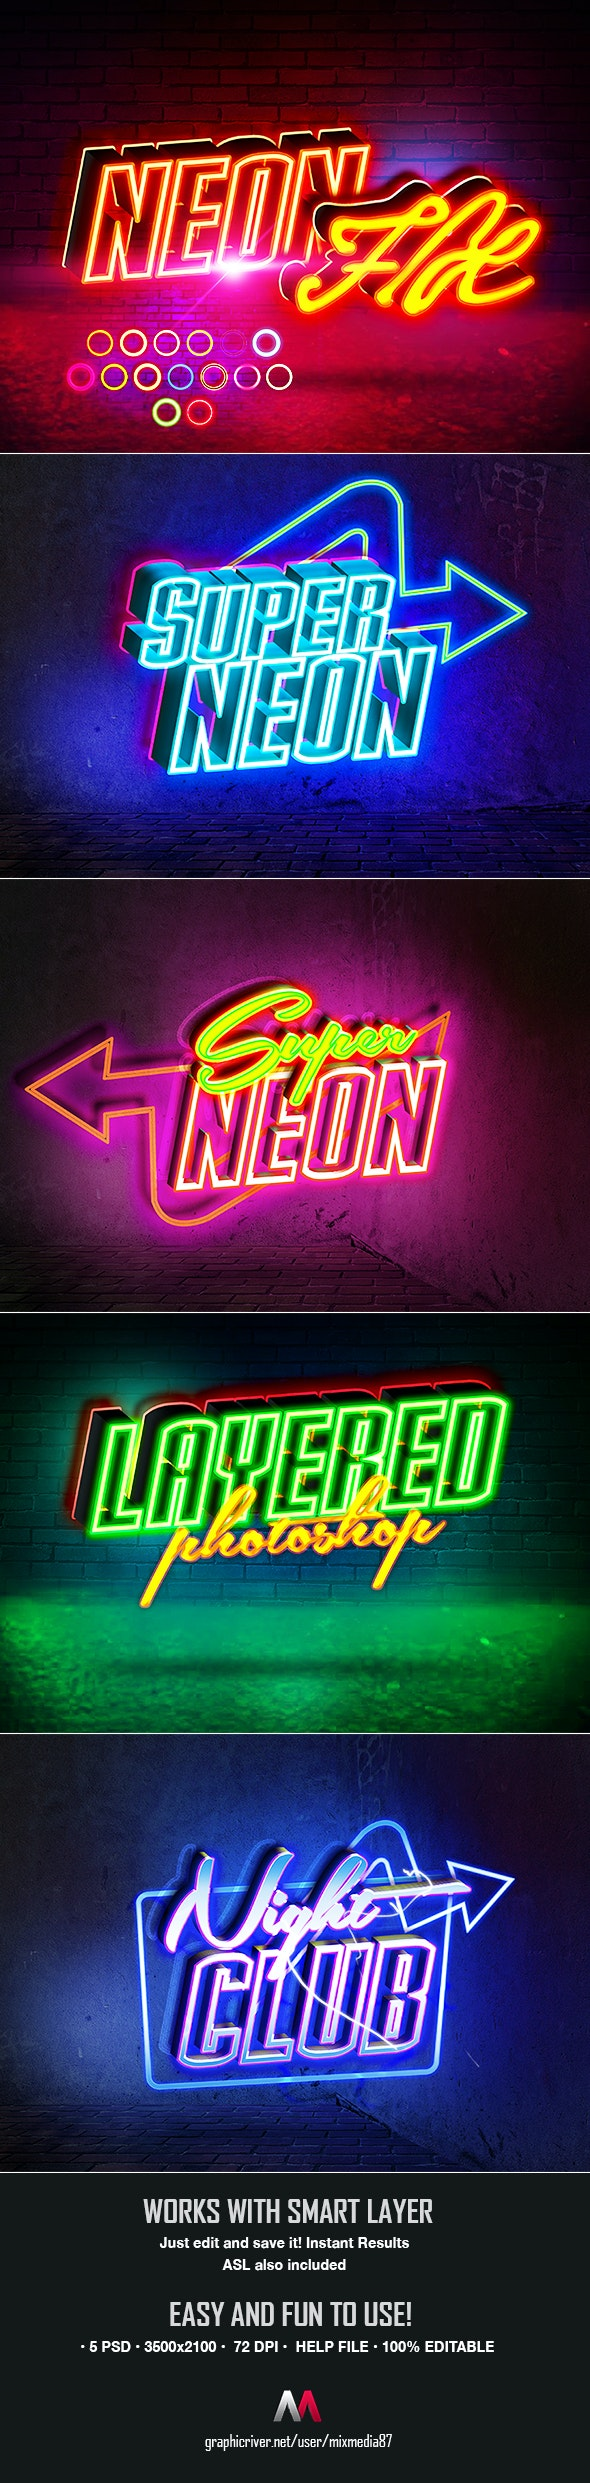 Neon Sign Styles V4 - Text Effects Actions